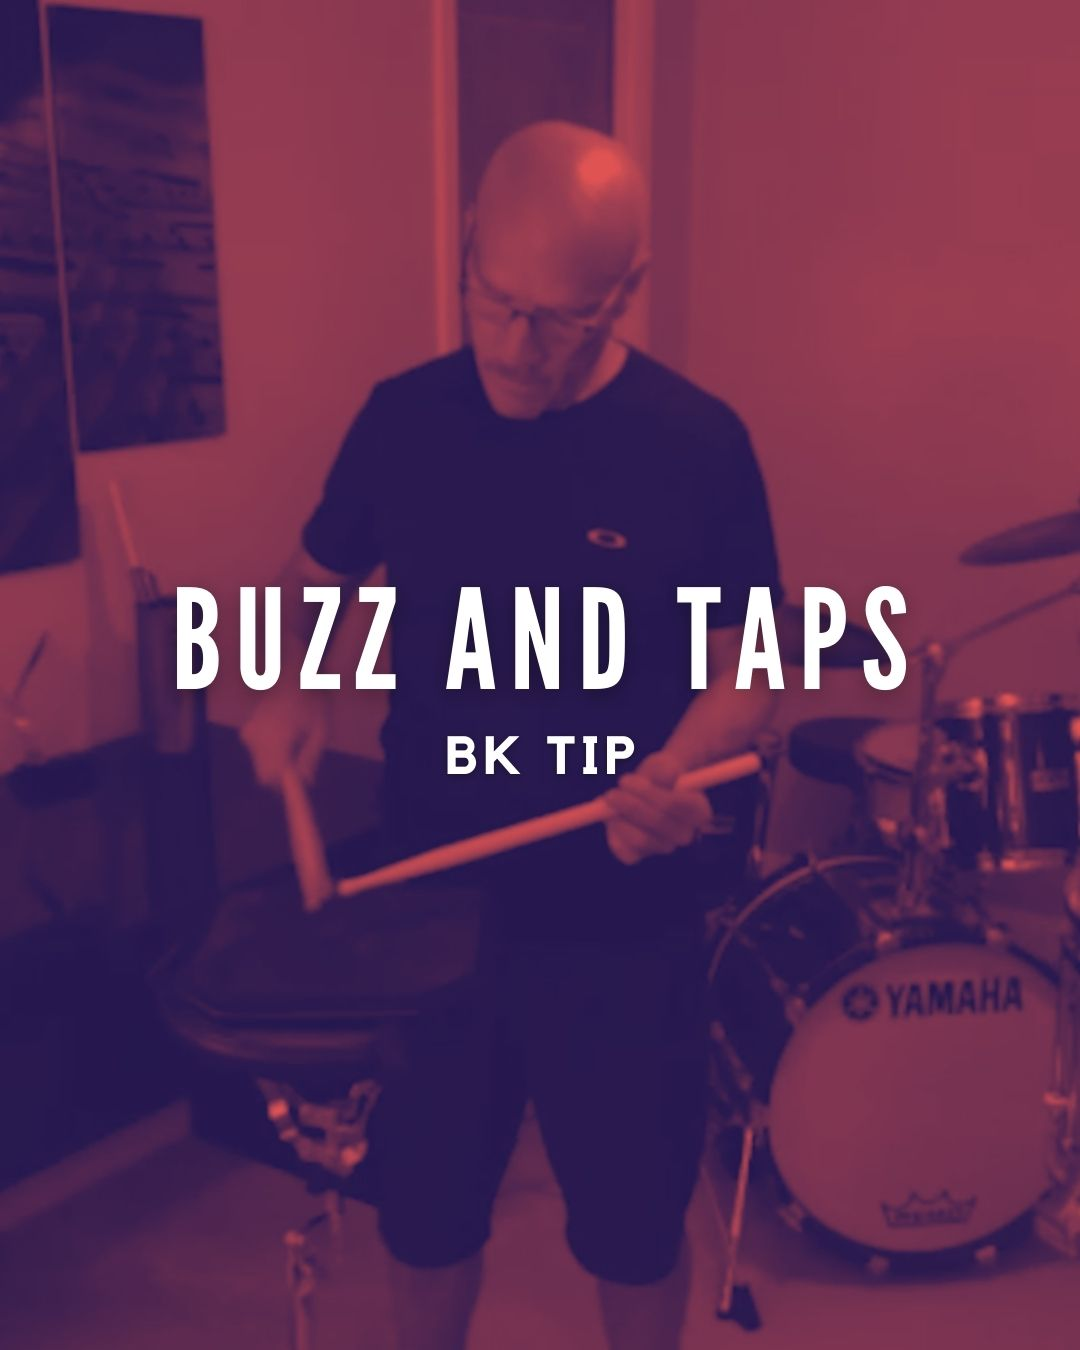 Buzz and Taps